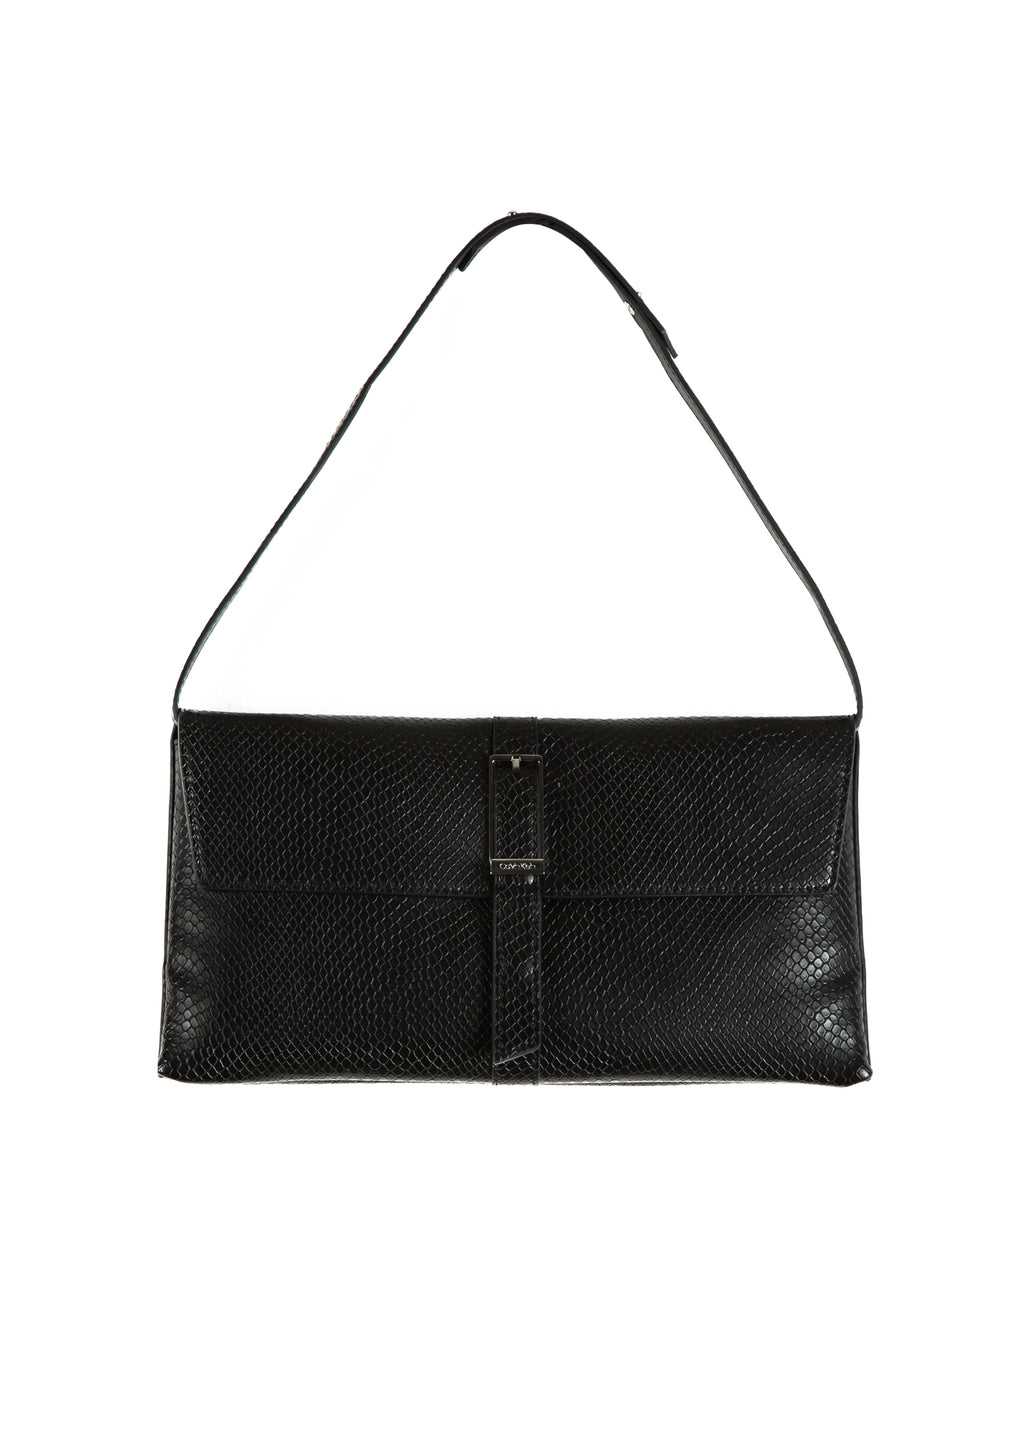 CK WINGED SHOULDERBAG